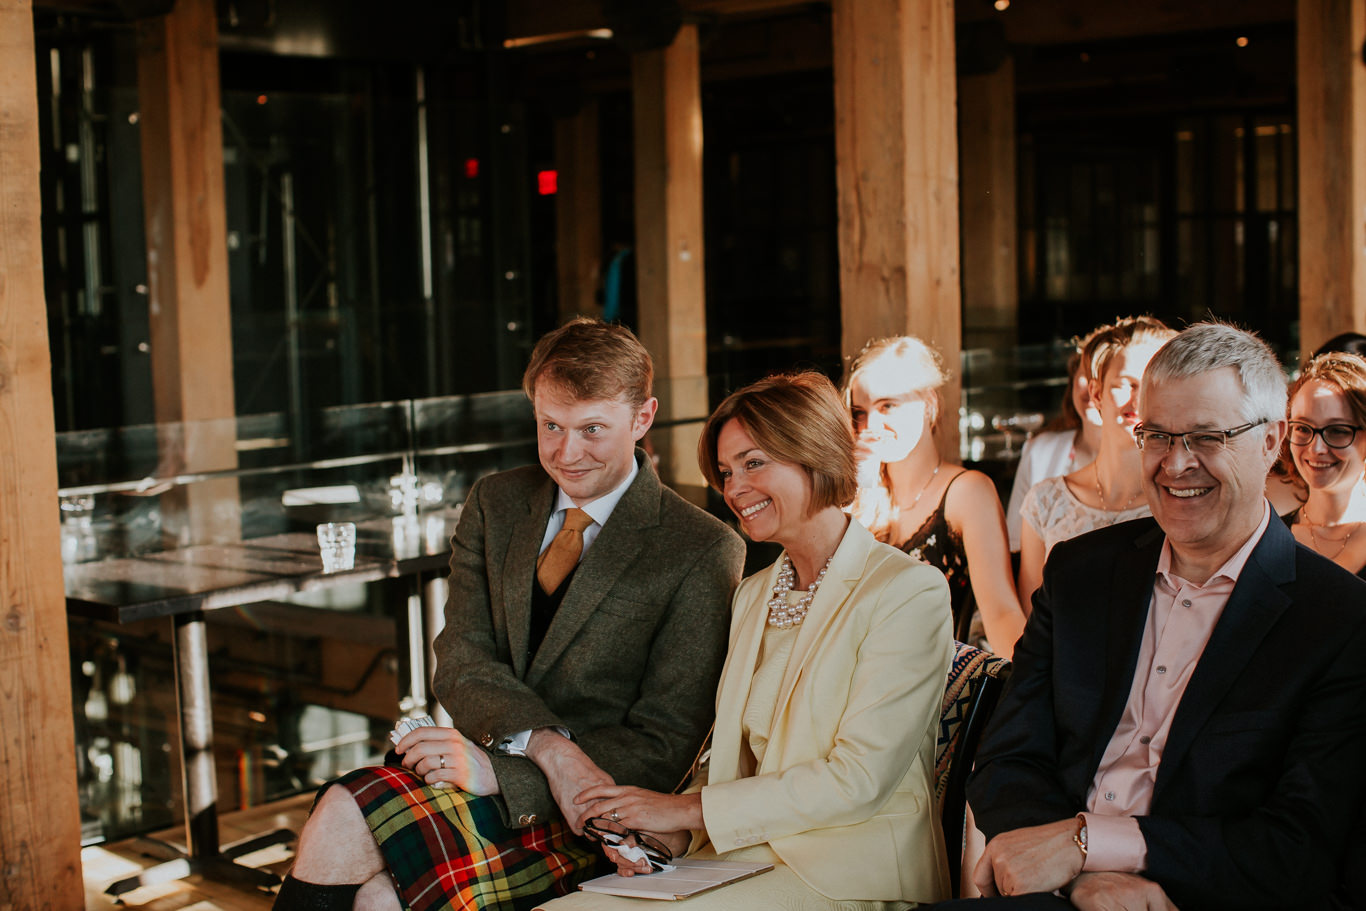 Lindsay-and-Heather-Charbar-Restaurant-Wedding-in-Calgary-106